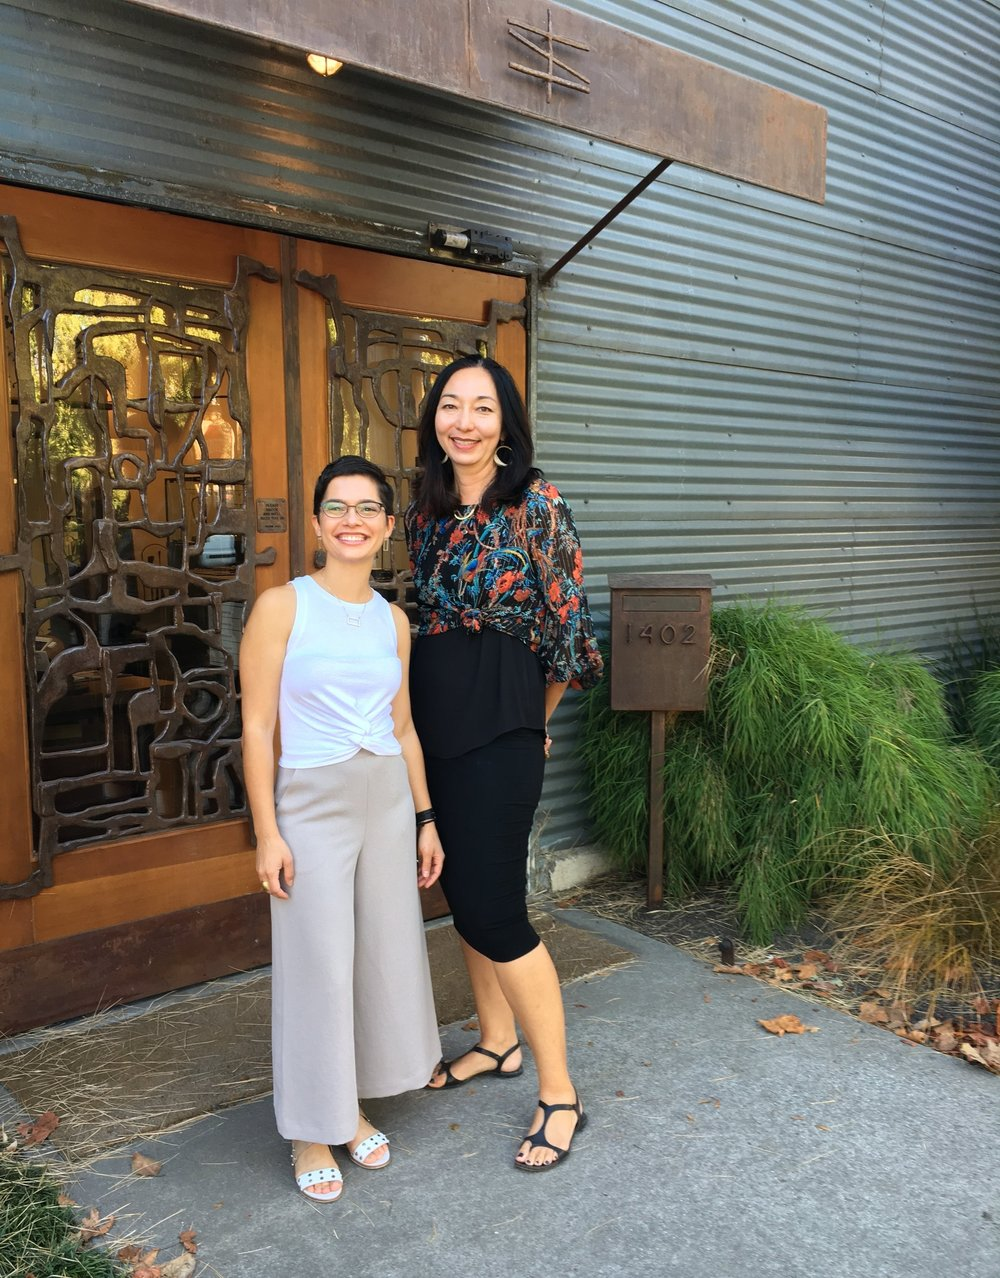 April Higashi (Gallery Owner/Jewelry Designer) and I catching up during my visit at the gallery.